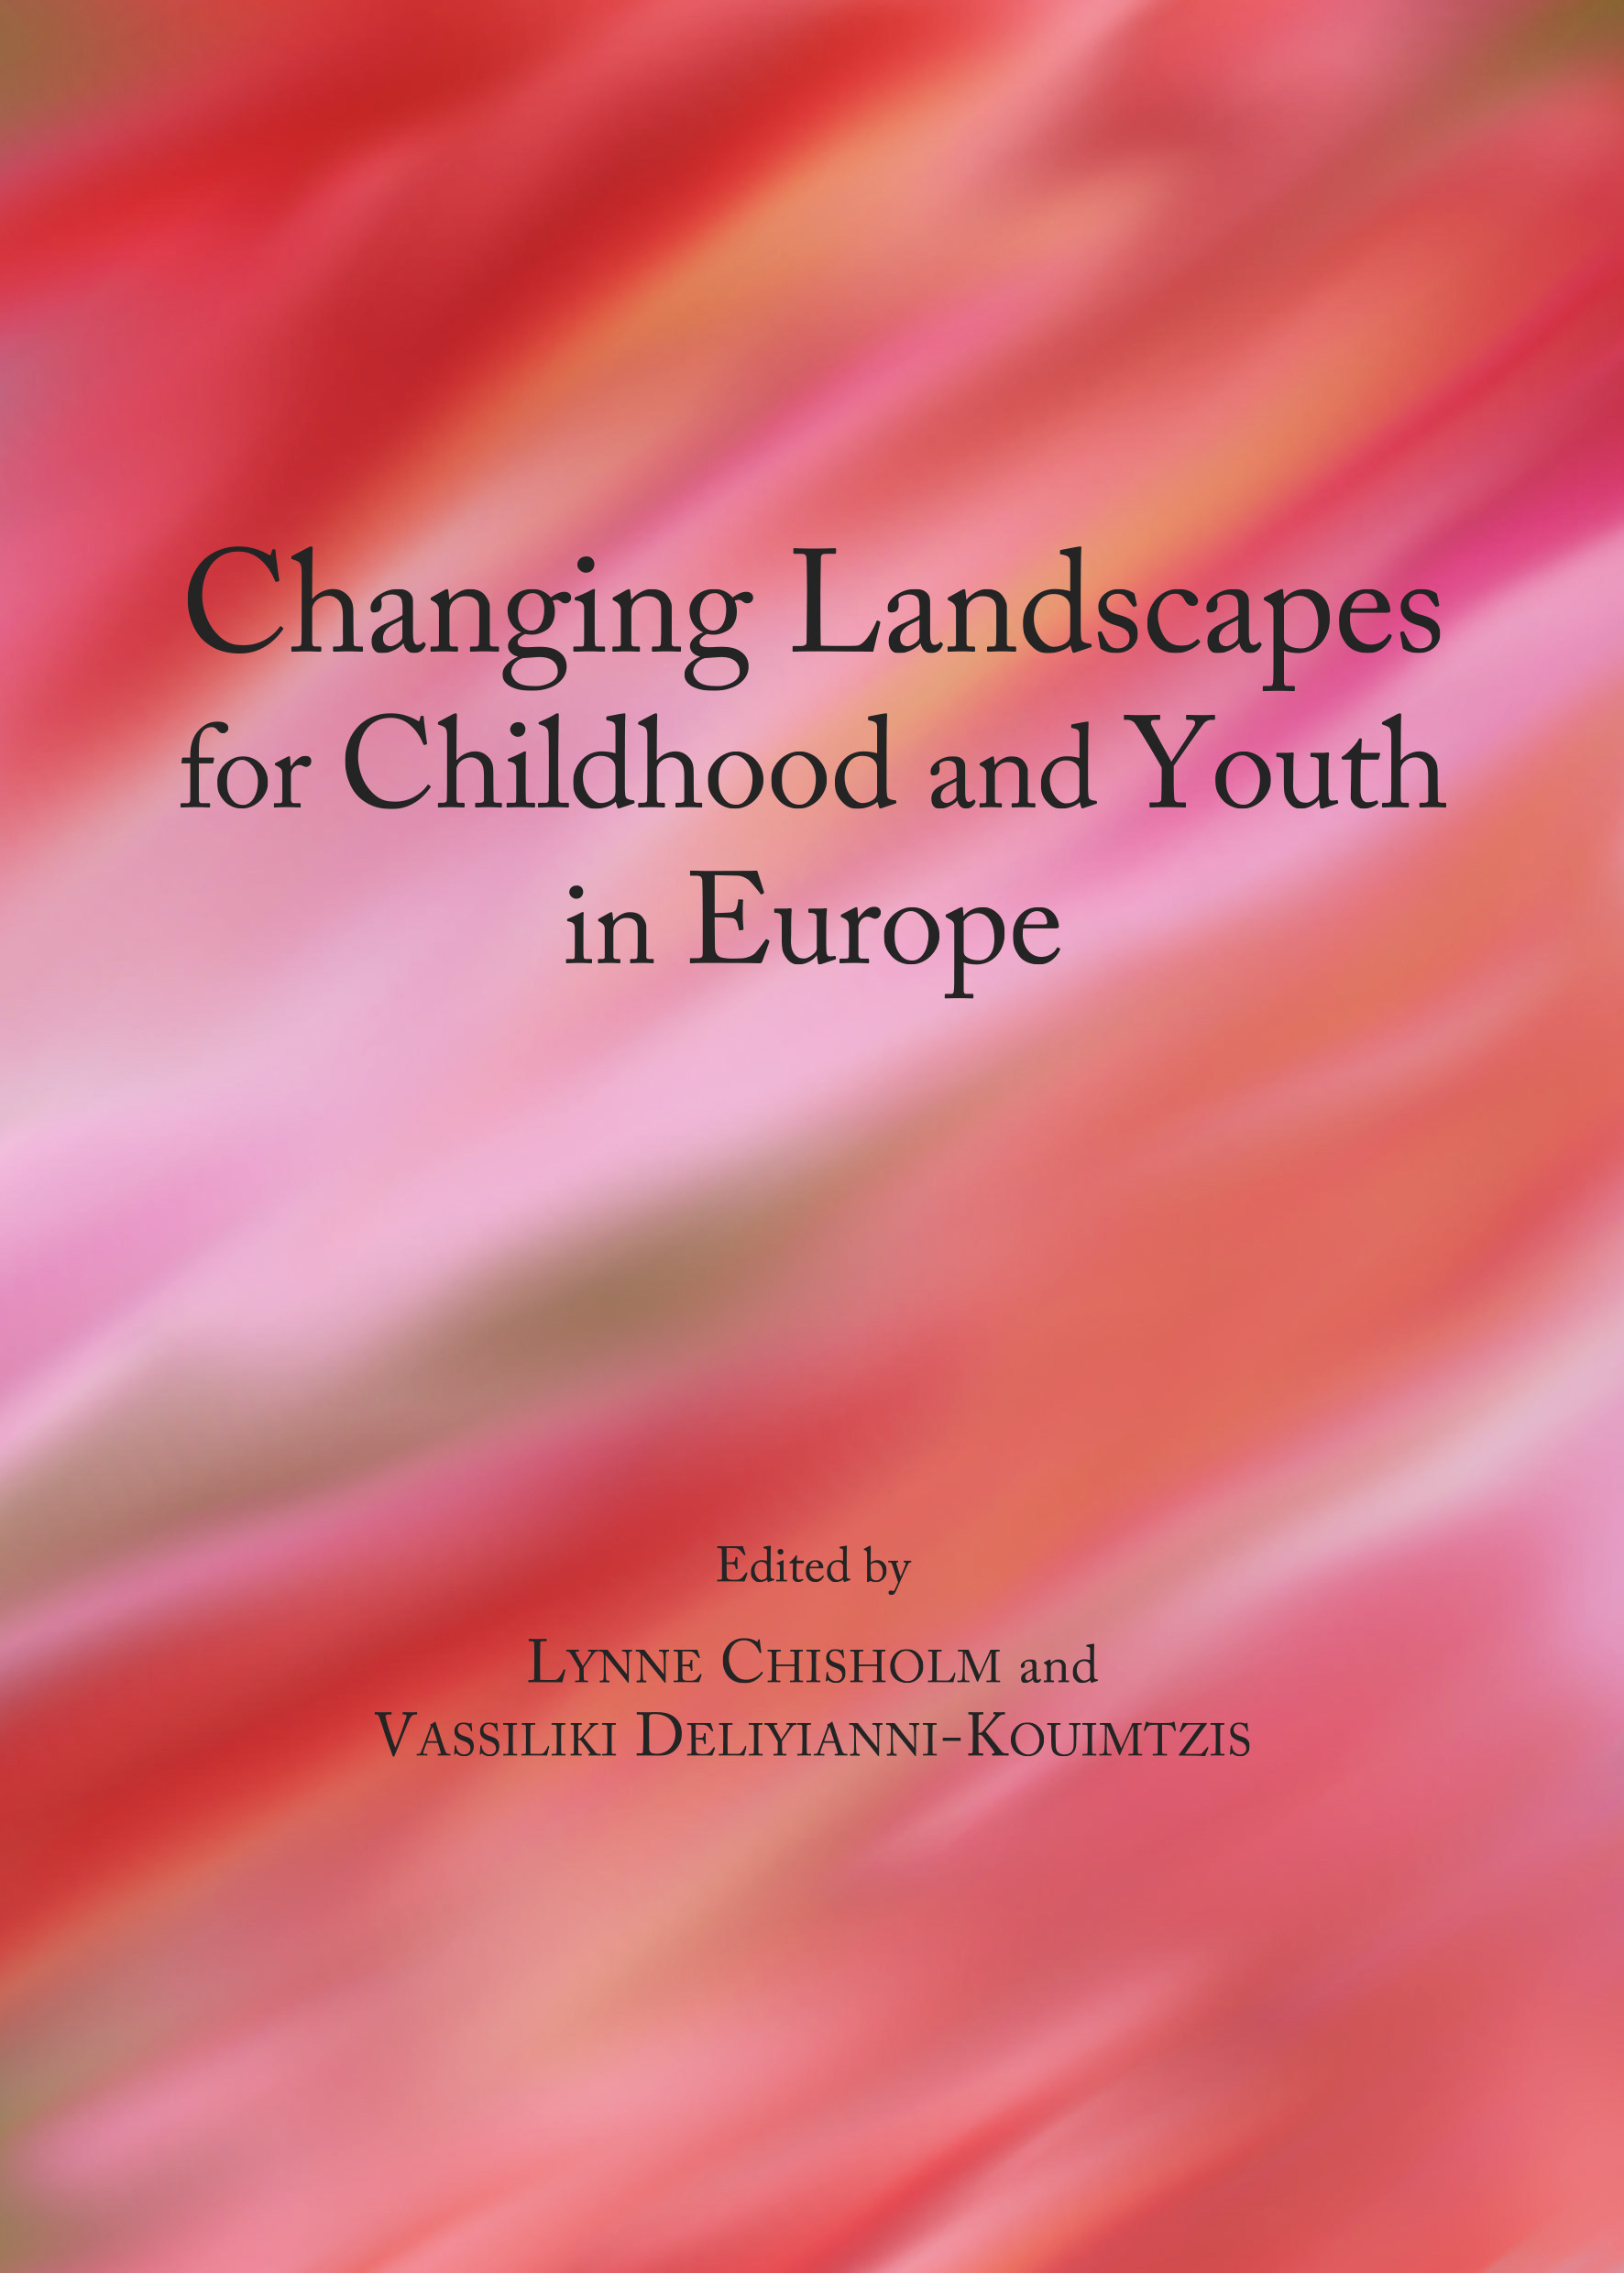 Changing Landscapes for Childhood and Youth in Europe